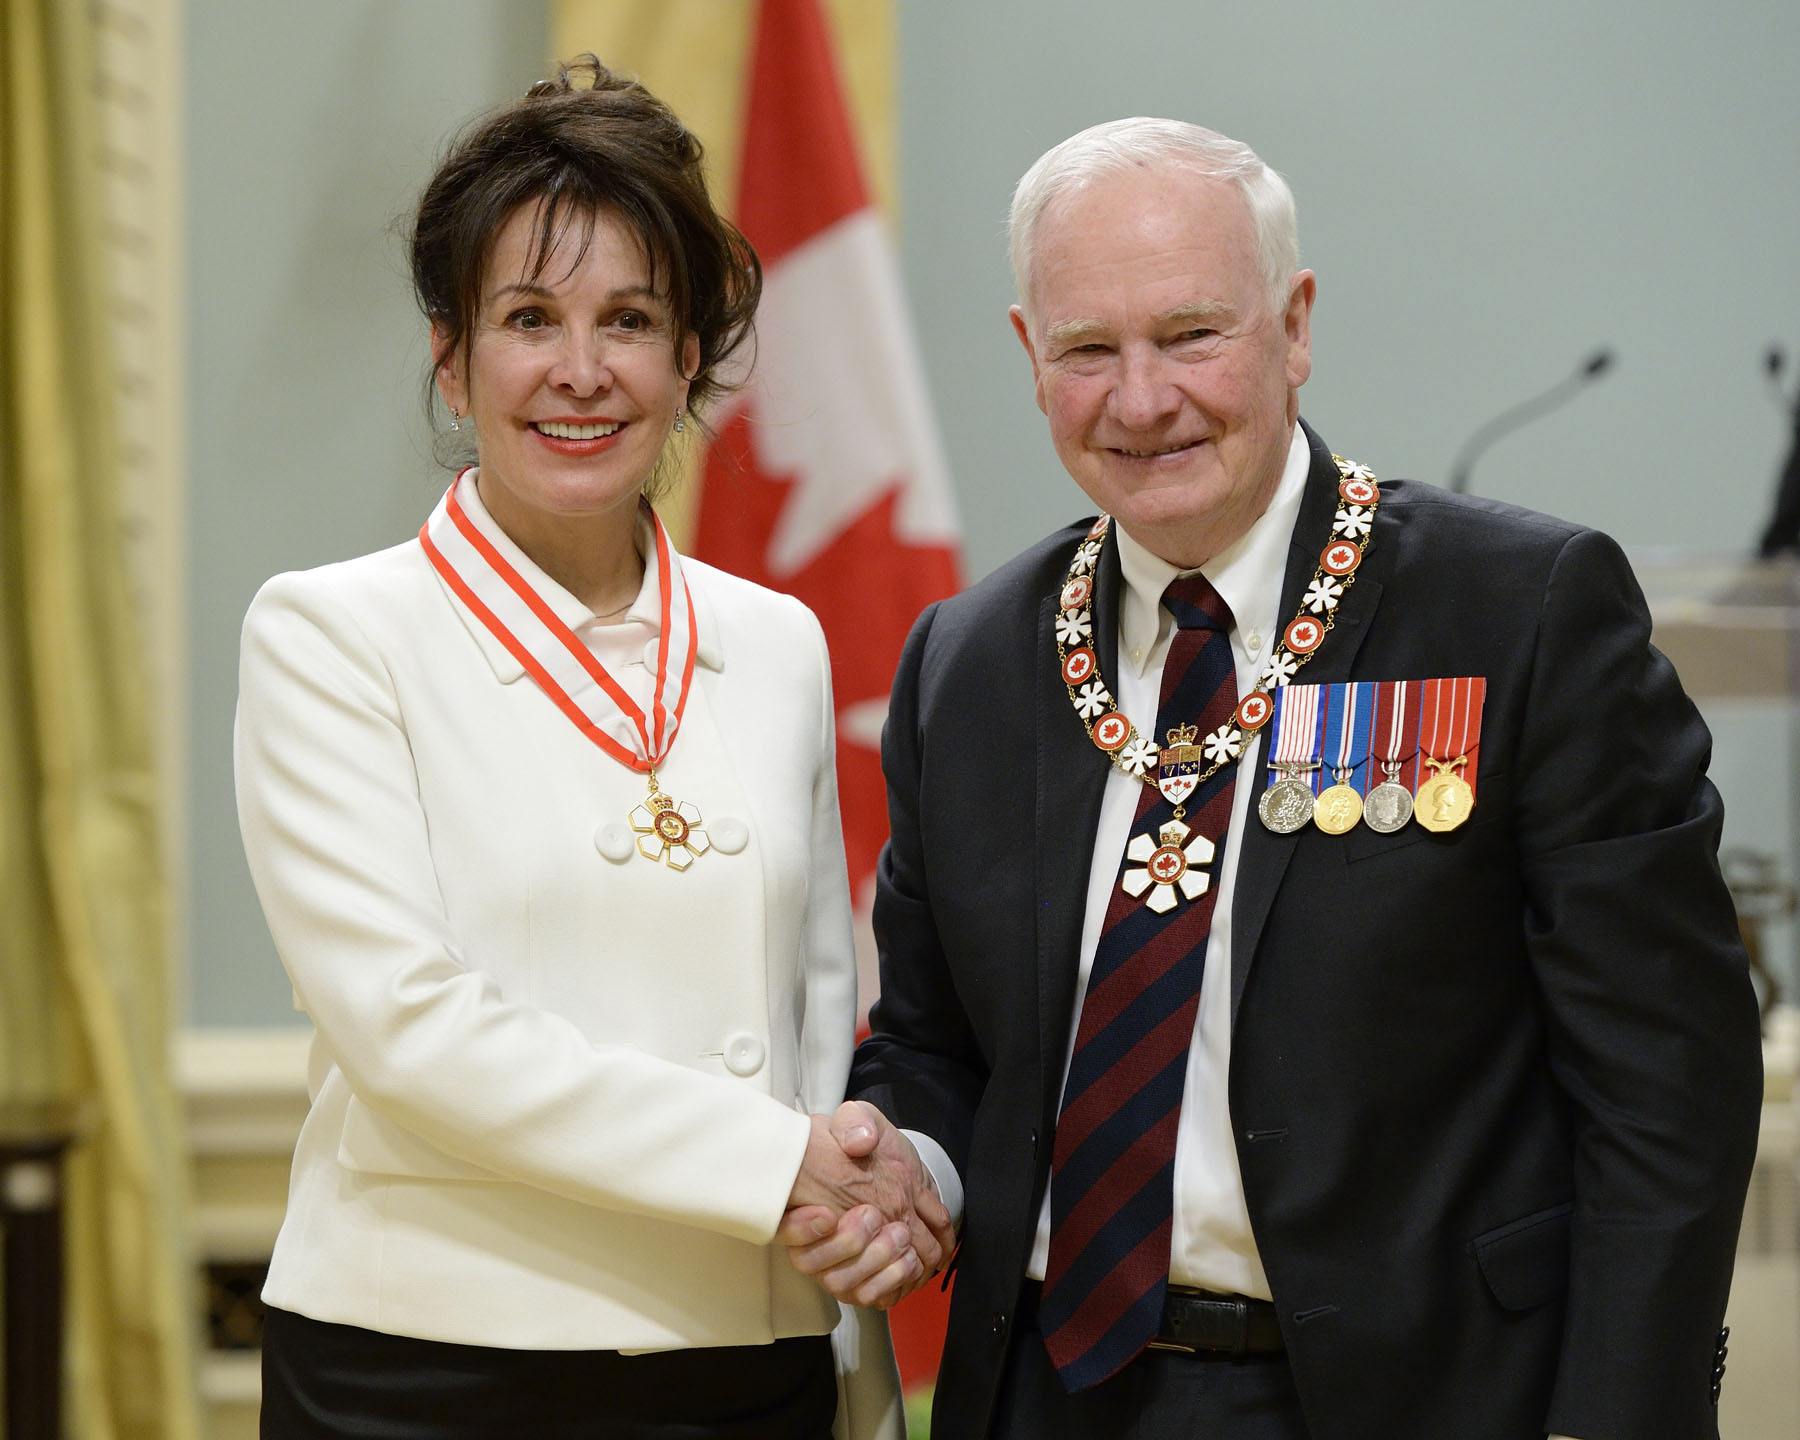 With a forward-thinking approach, the Honourable Louise Otis, O.C., O.Q. (Montréal, Quebec) helped expand the administration of justice in Canada and abroad. A retired justice of the Quebec Court of Appeal, she instituted the first integrated judicial mediation system in Canada, thereby easing and expediting the dispute resolution process. In addition to being a mediator, arbitrator and judge in international courts, she founded such organizations as the Canadian Conference of Judicial Mediation. She is also renowned as an outstanding educator in McGill University's Faculty of Law.